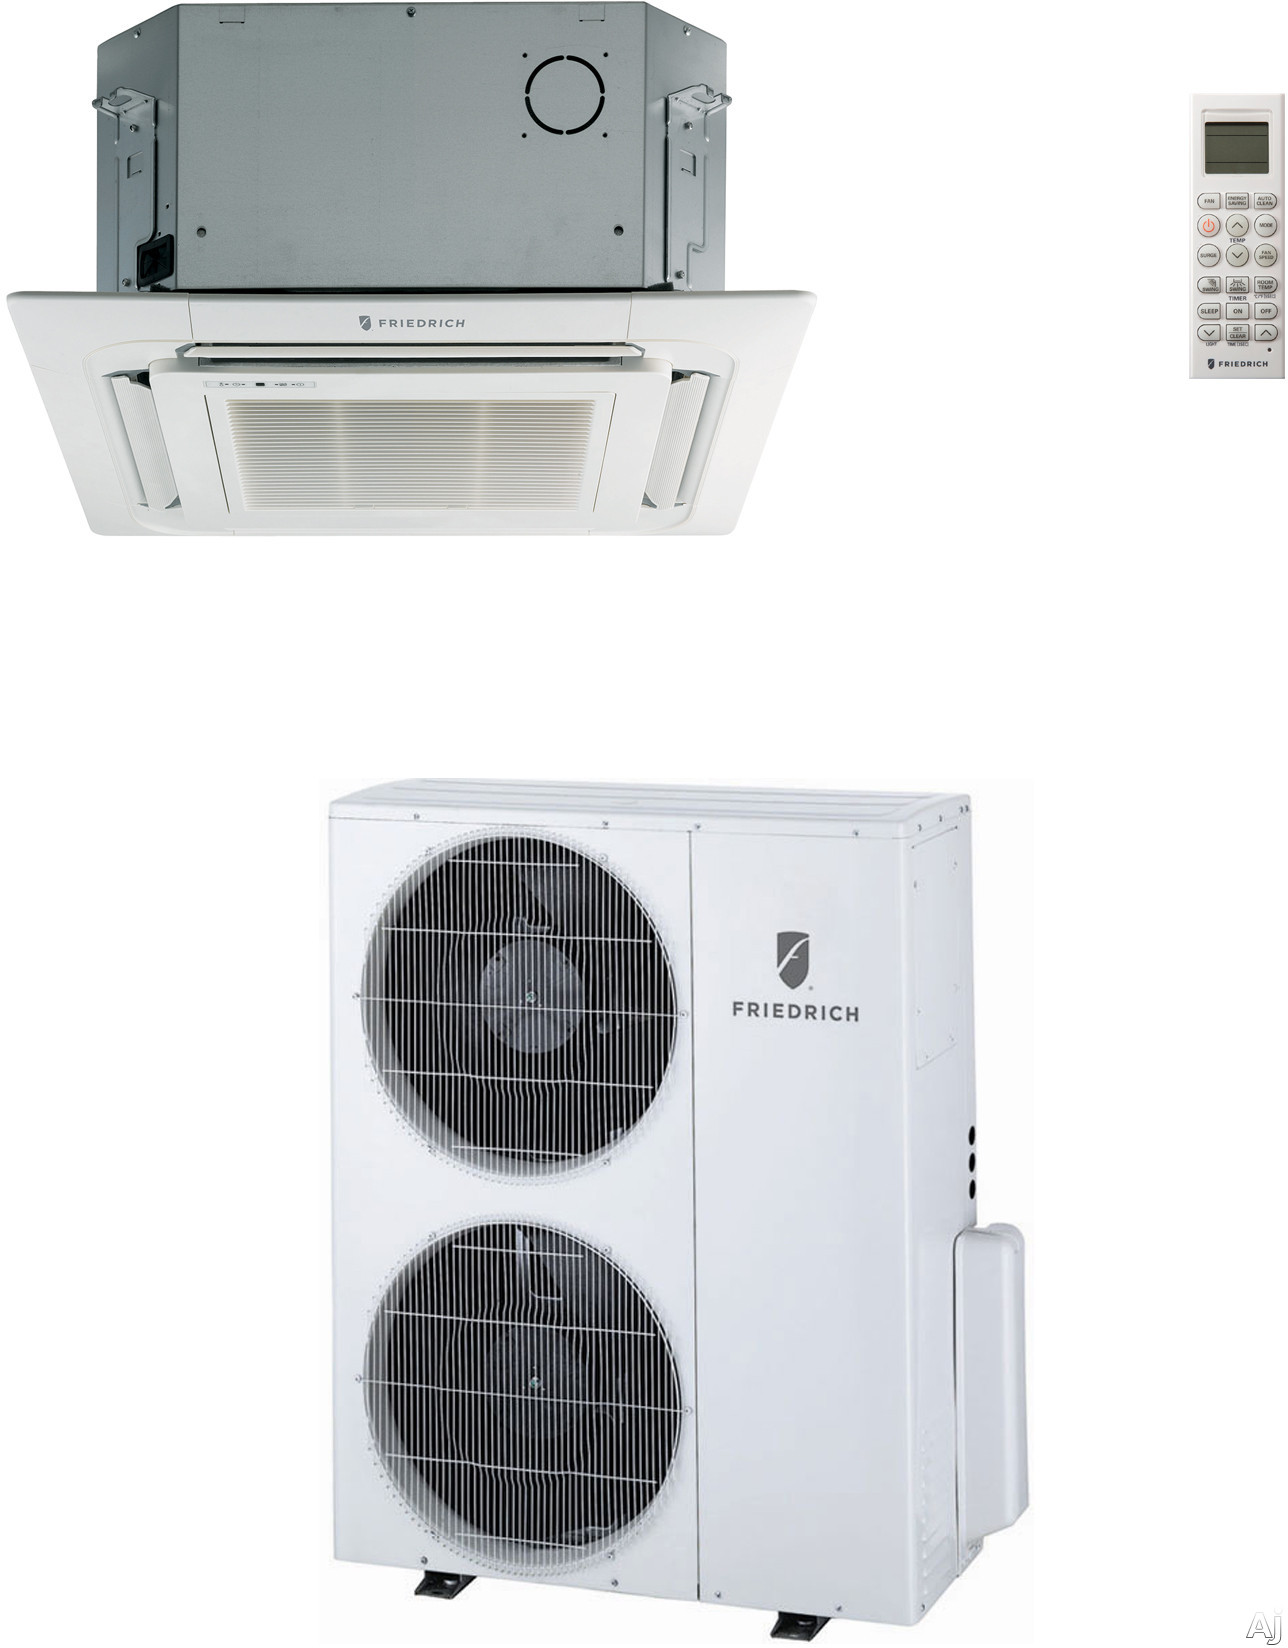 Friedrich C36YJ 36 000 BTU Single Zone Ceiling Cassette Ductless Split System with 40 000 BTU Heat Pump 13.5 EER 19.0 SEER and R410A Refrigerant MC36Y3J Indoor MR36UY3J Outdoor